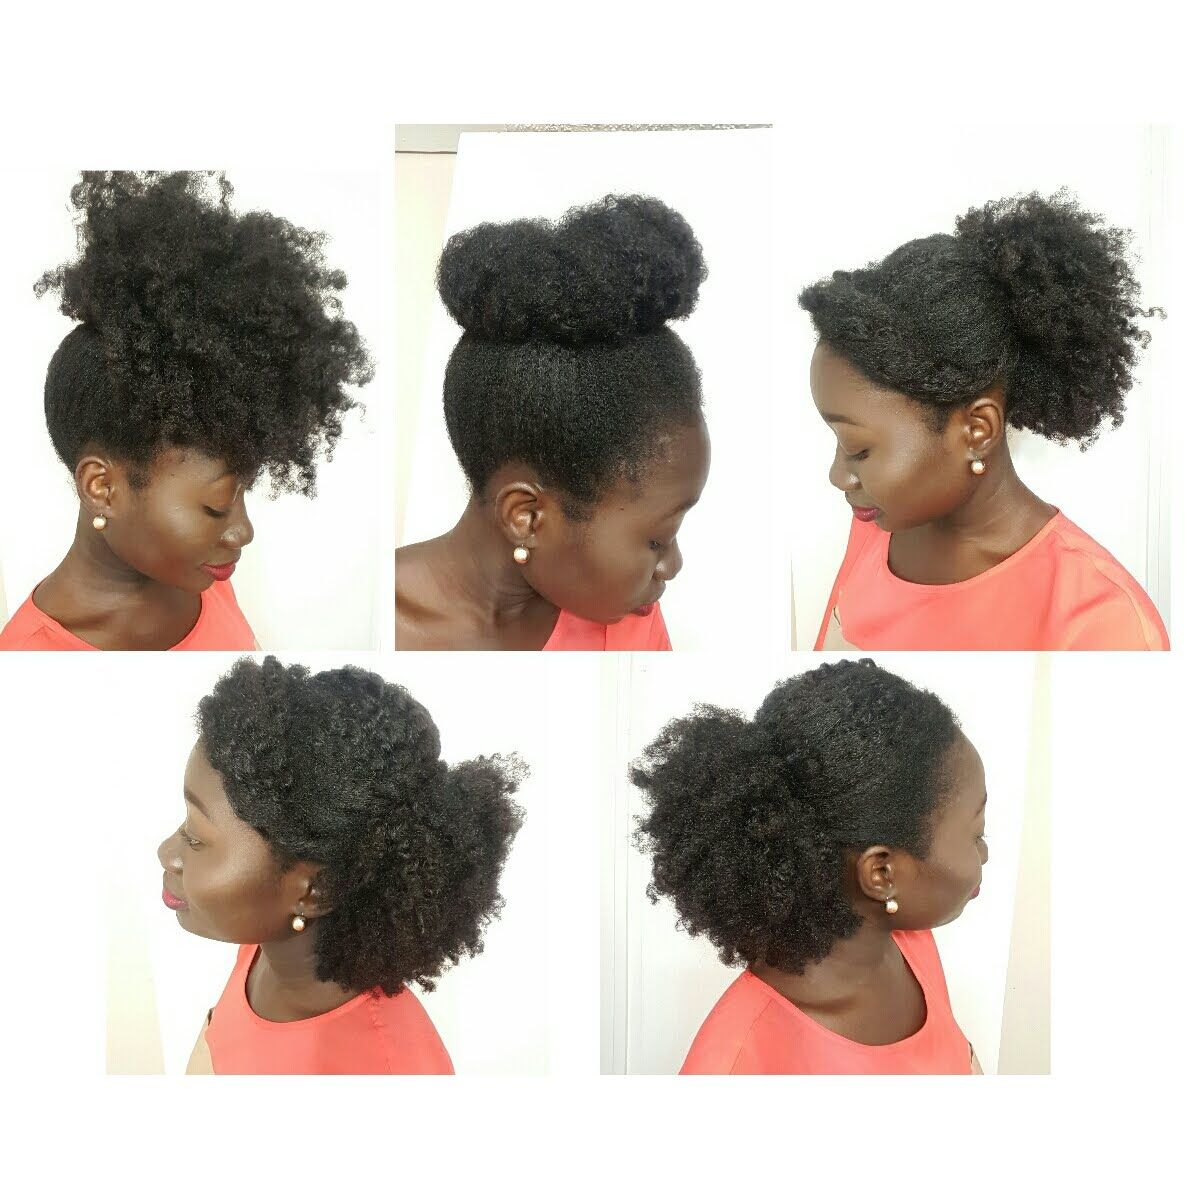 5 Simple Natural Hair Styles Medium Length Natural Hair Styles Easy Medium Length Natural Hairstyles Medium Natural Hair Styles